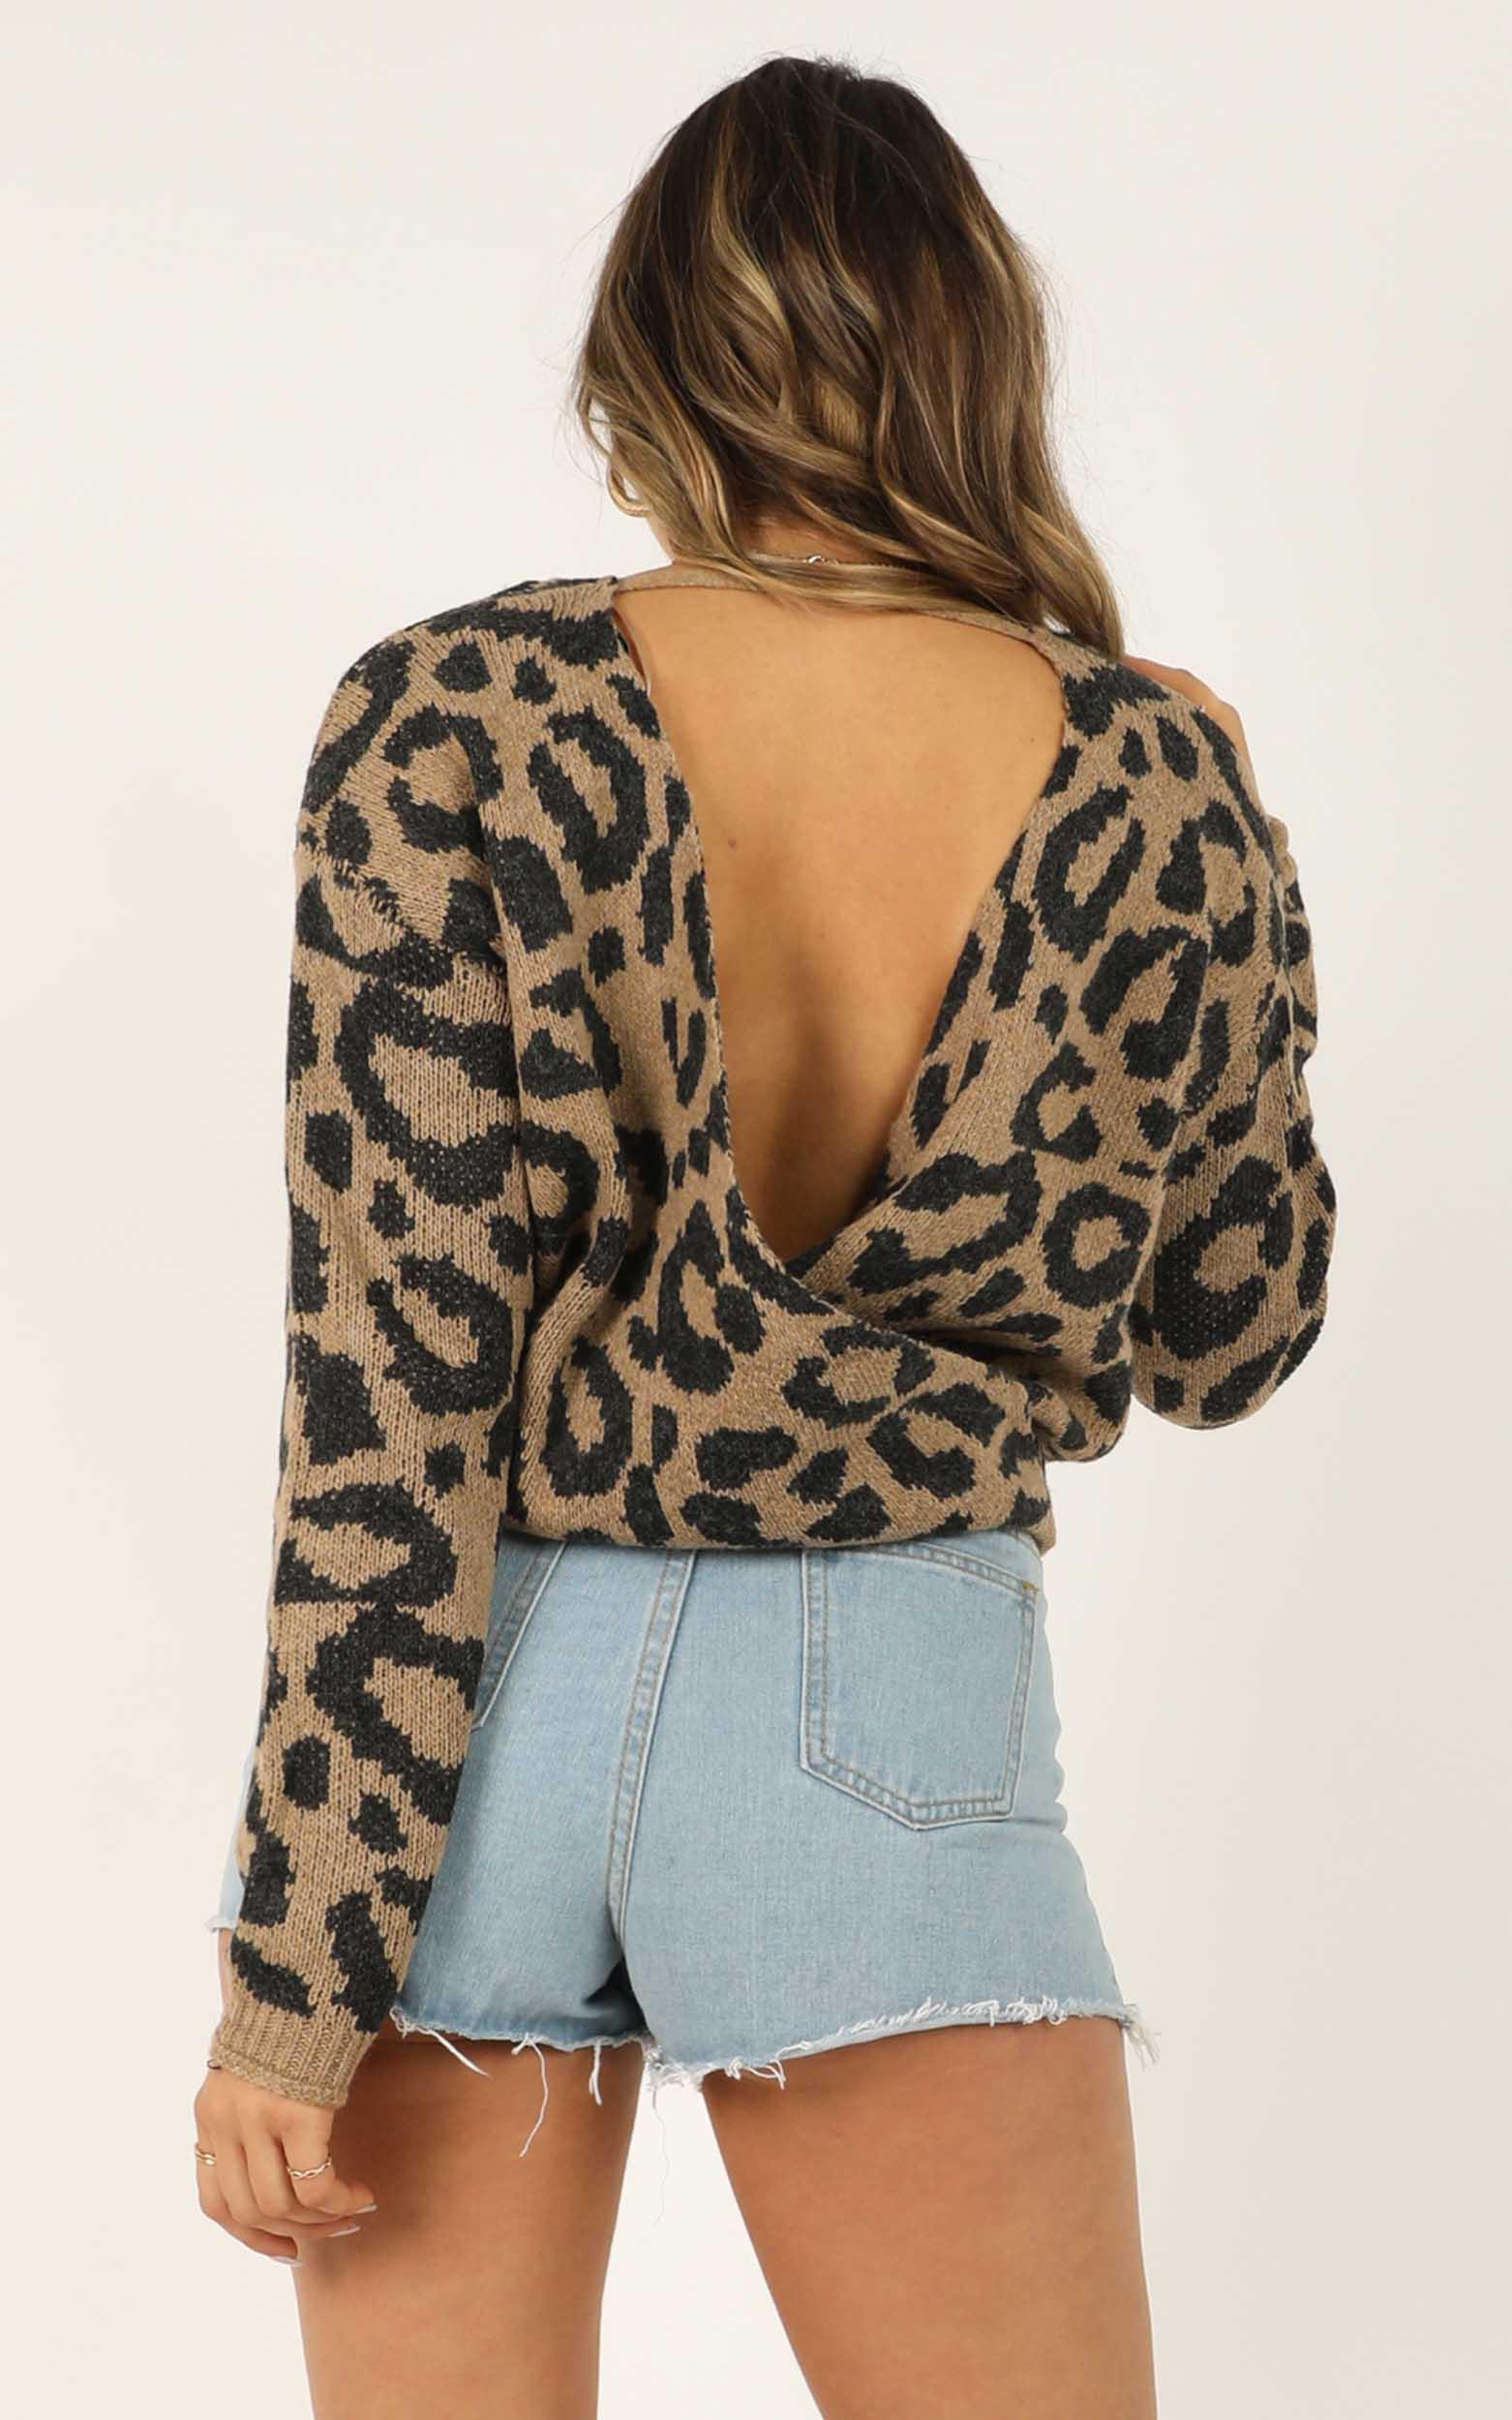 Feels Right knit jumper in leopard print - 12 (L), Brown, hi-res image number null